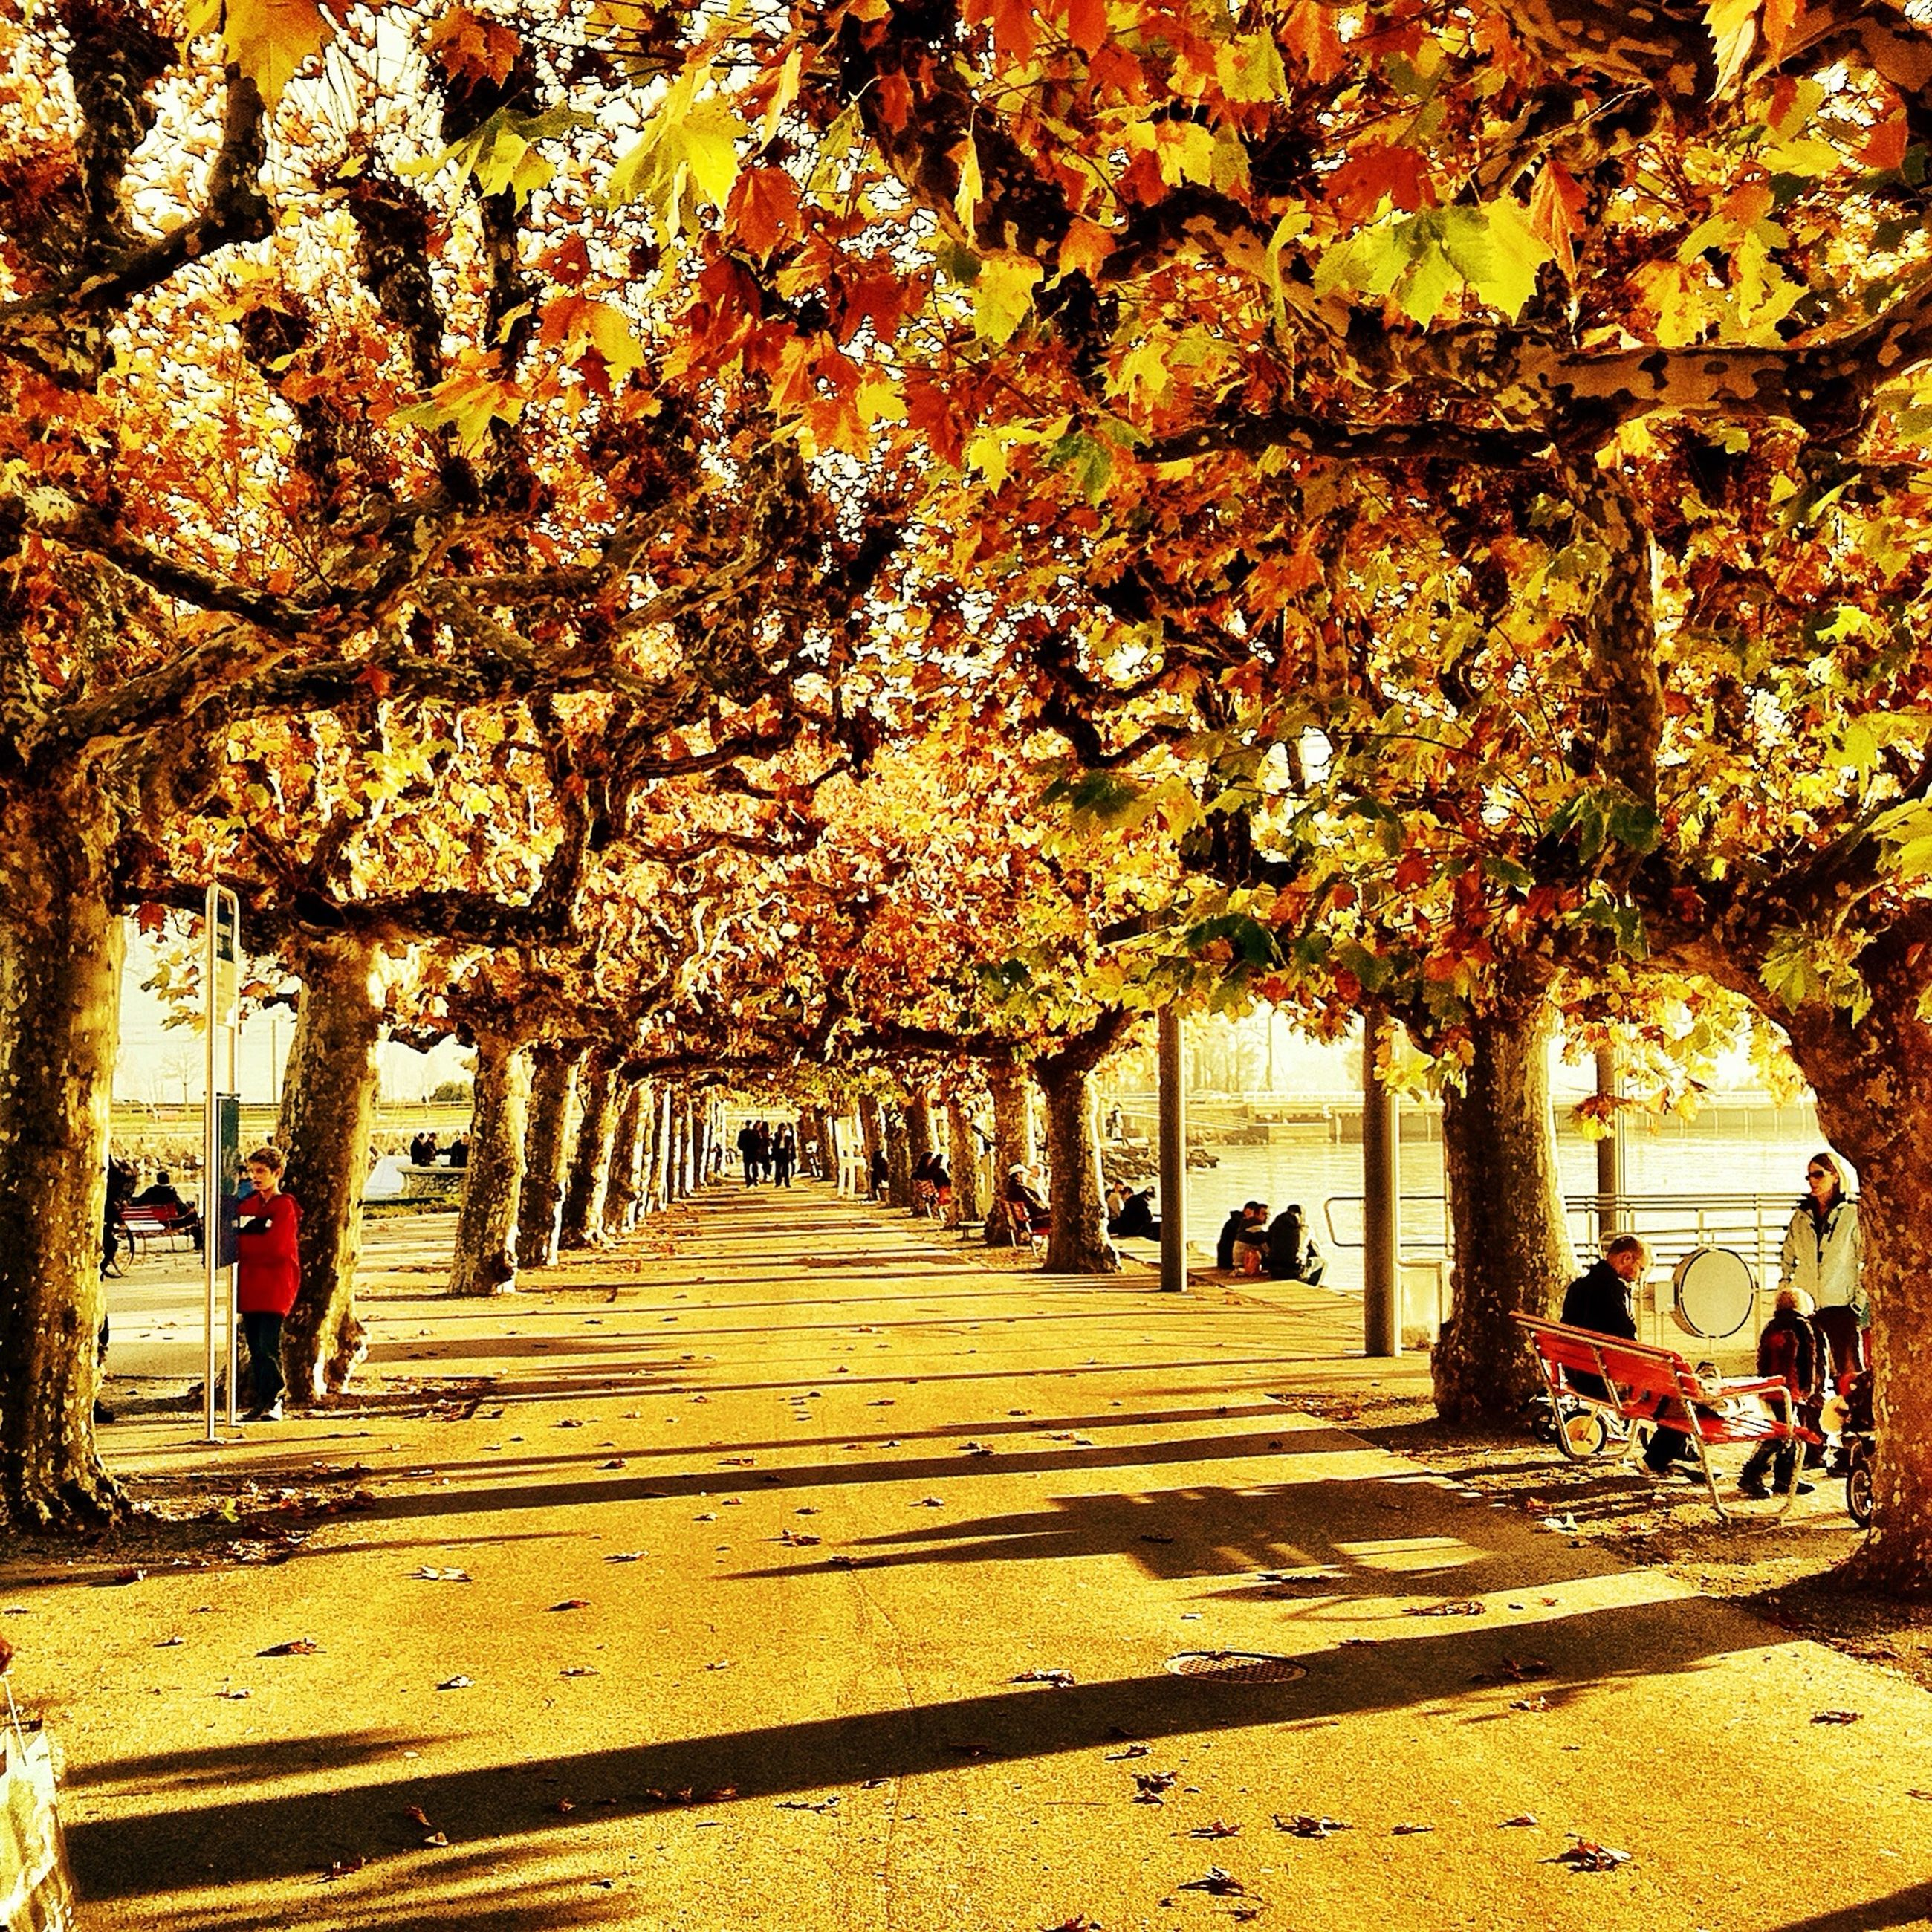 tree, autumn, the way forward, change, person, park - man made space, treelined, men, diminishing perspective, growth, footpath, season, incidental people, leaf, lifestyles, transportation, day, large group of people, branch